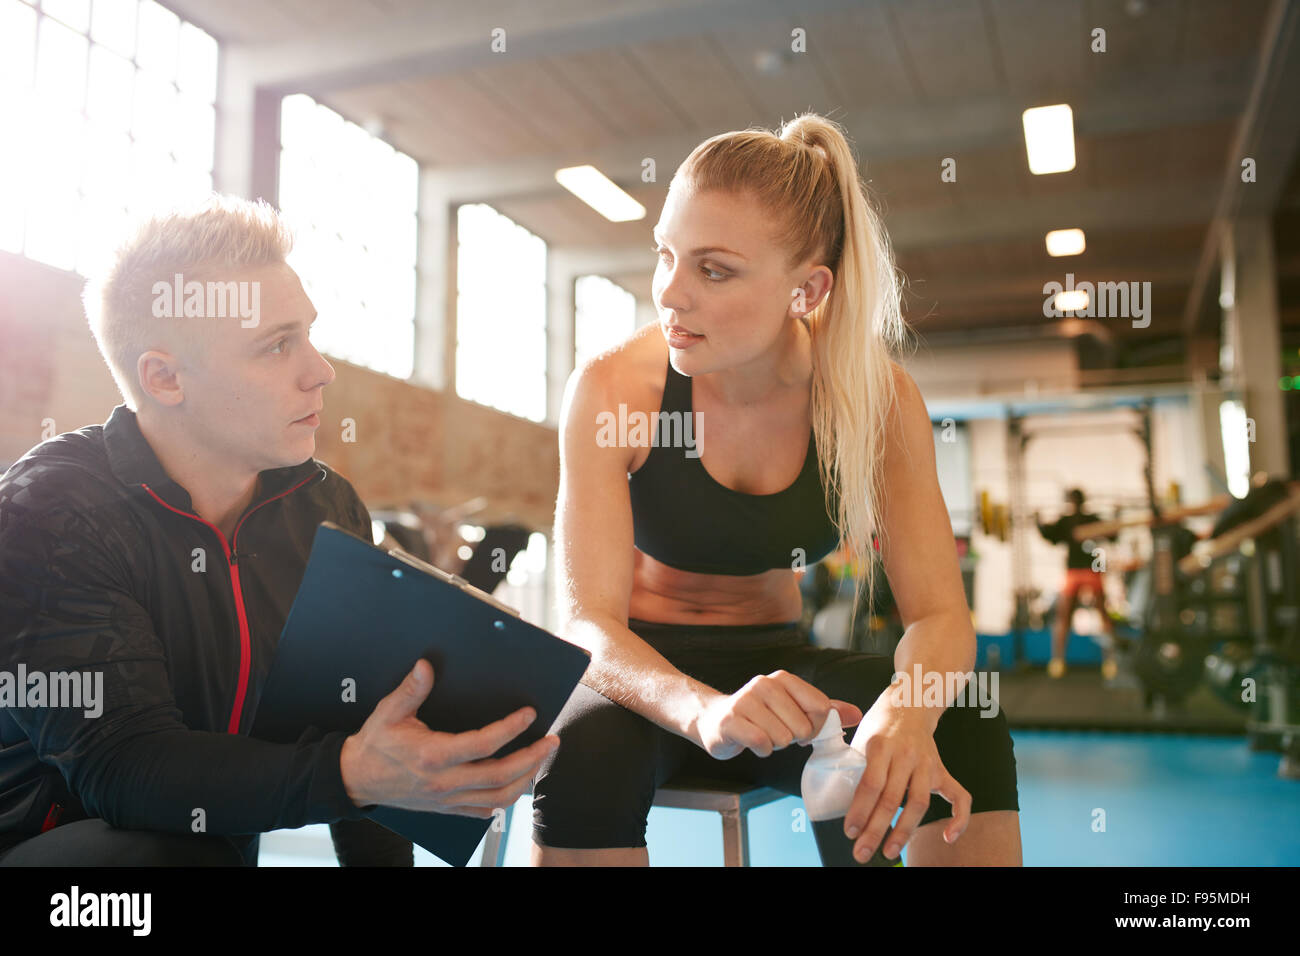 Shot of a personal trainer and young woman discussing fitness plan. Personal trainer showing something on clipboard - Stock Image